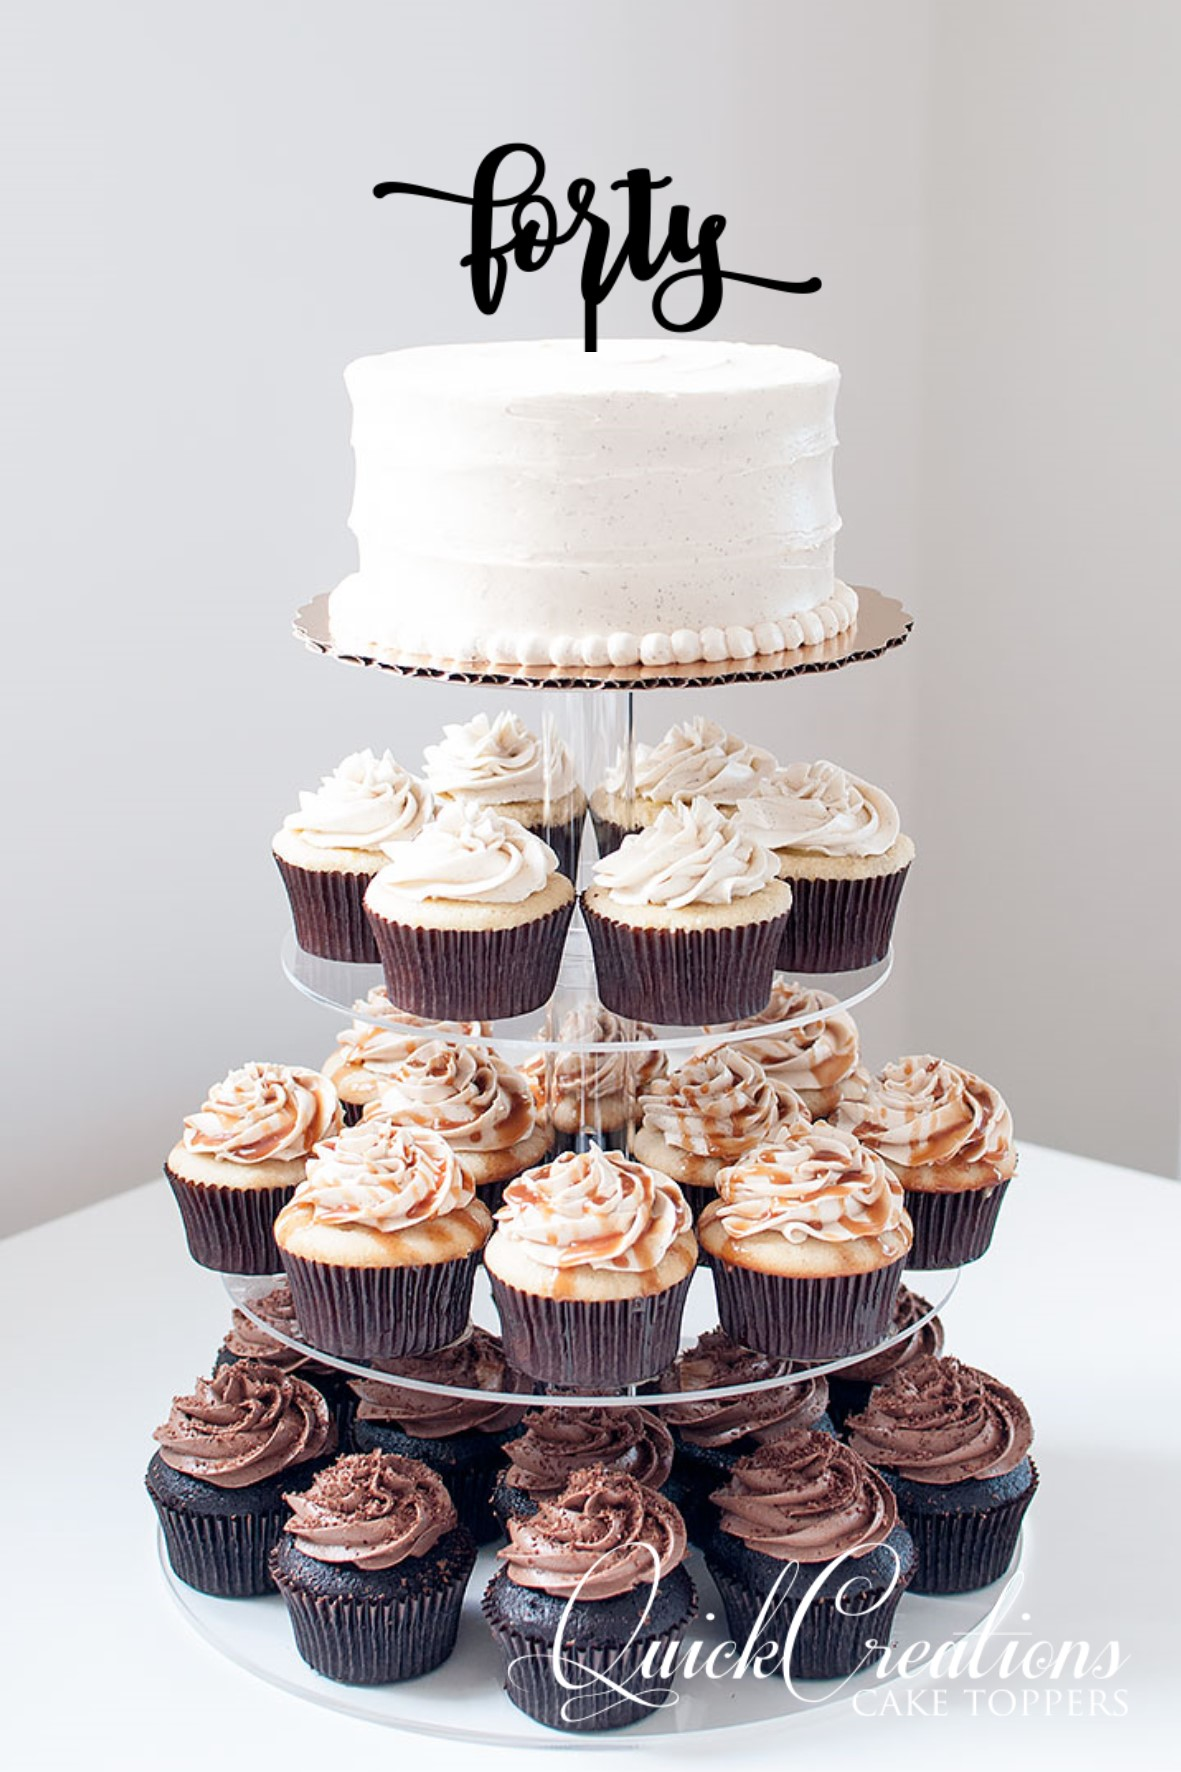 Quick Creations Cake Topper - Forty v3